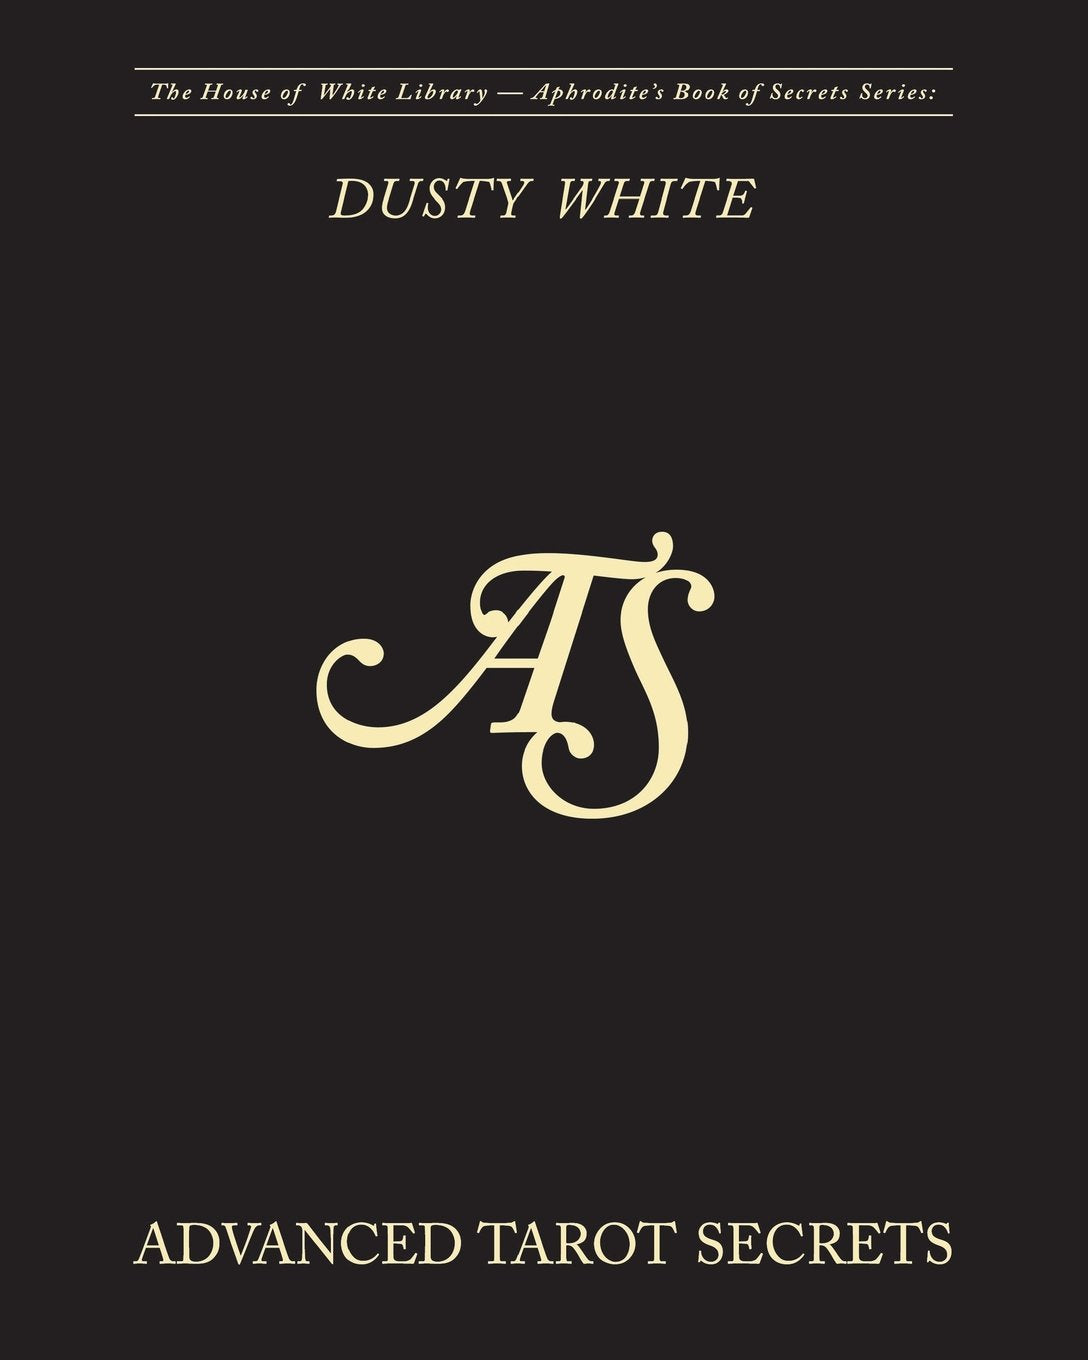 Advanced Tarot Secrets: Volume 2 - Paperback Book by Dusty White